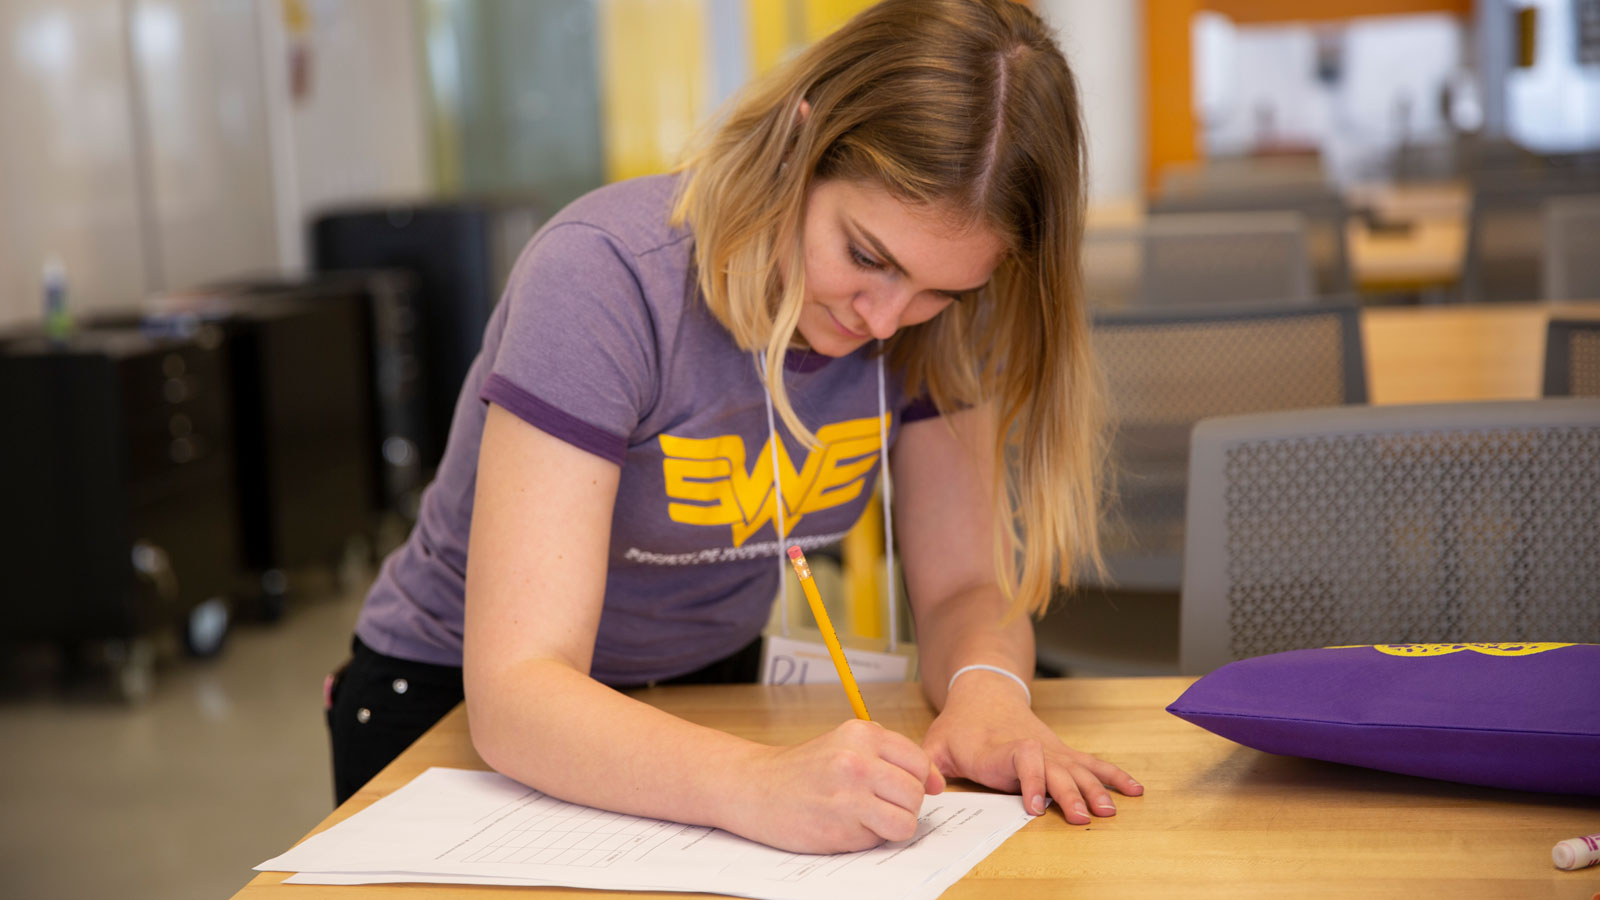 A student member of the ASU Society of Women Engineers chapter works on an outreach event project for young students.